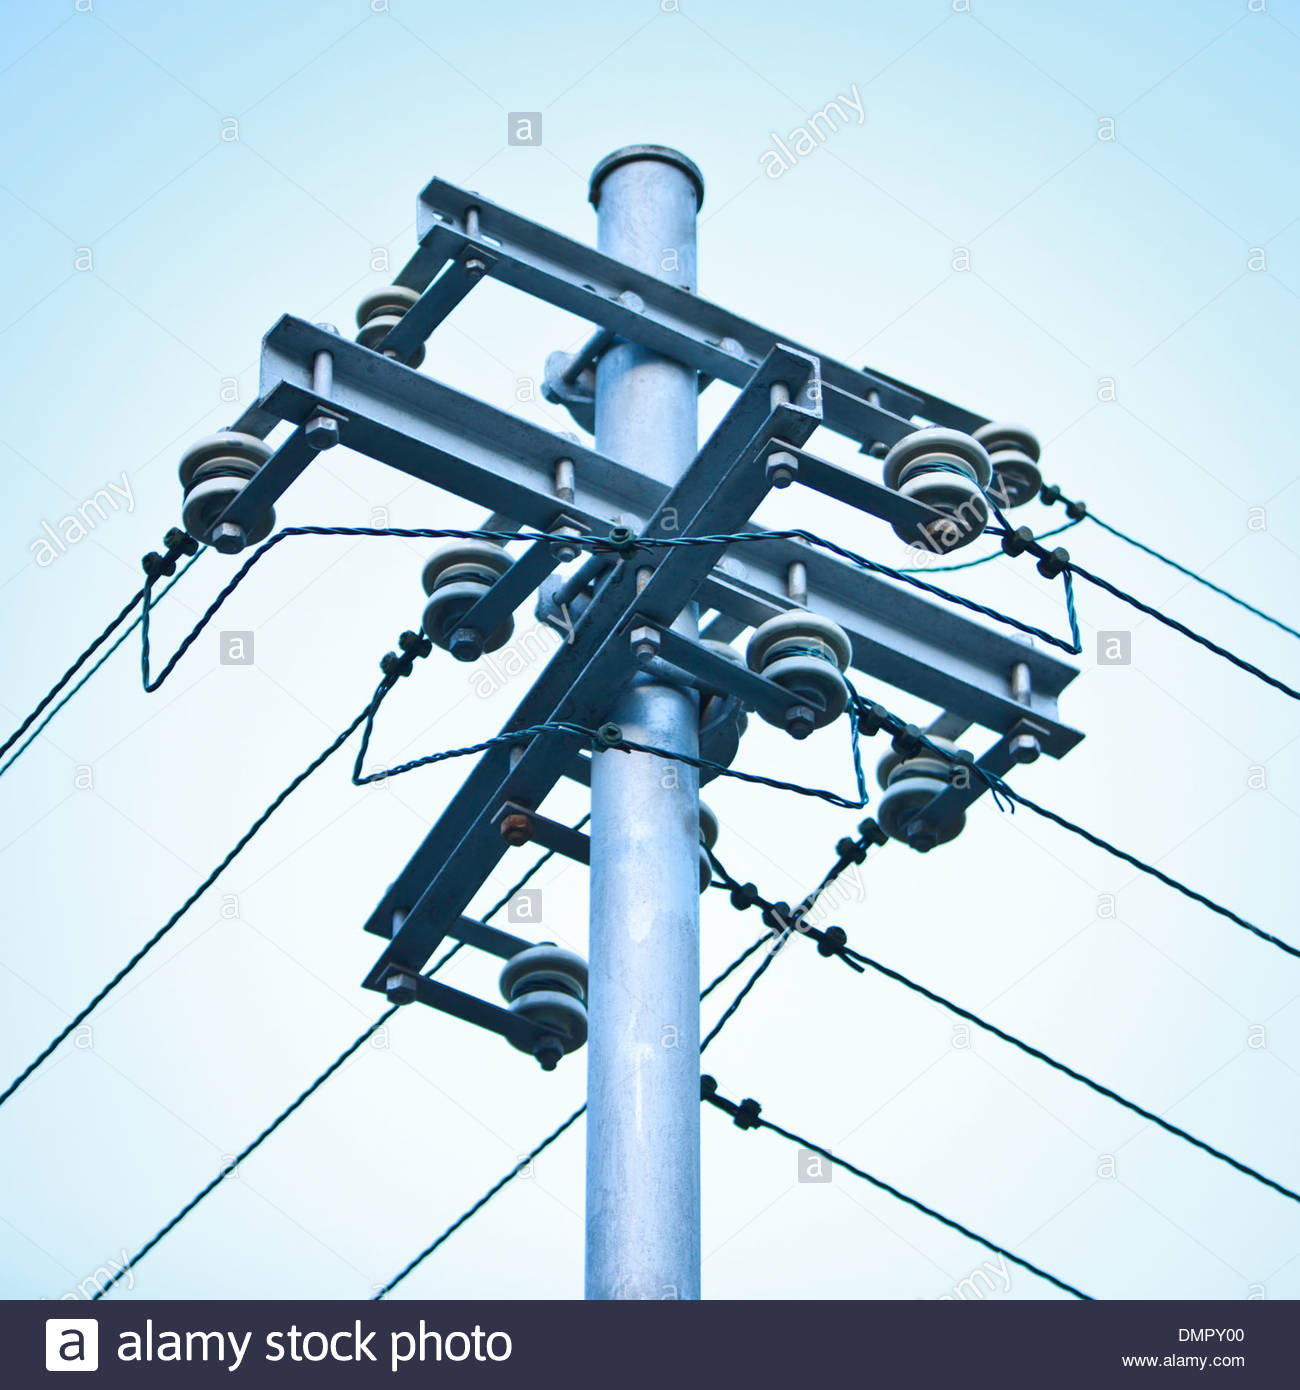 Electrical Wires Stock Photos & Electrical Wires Stock Images - Alamy